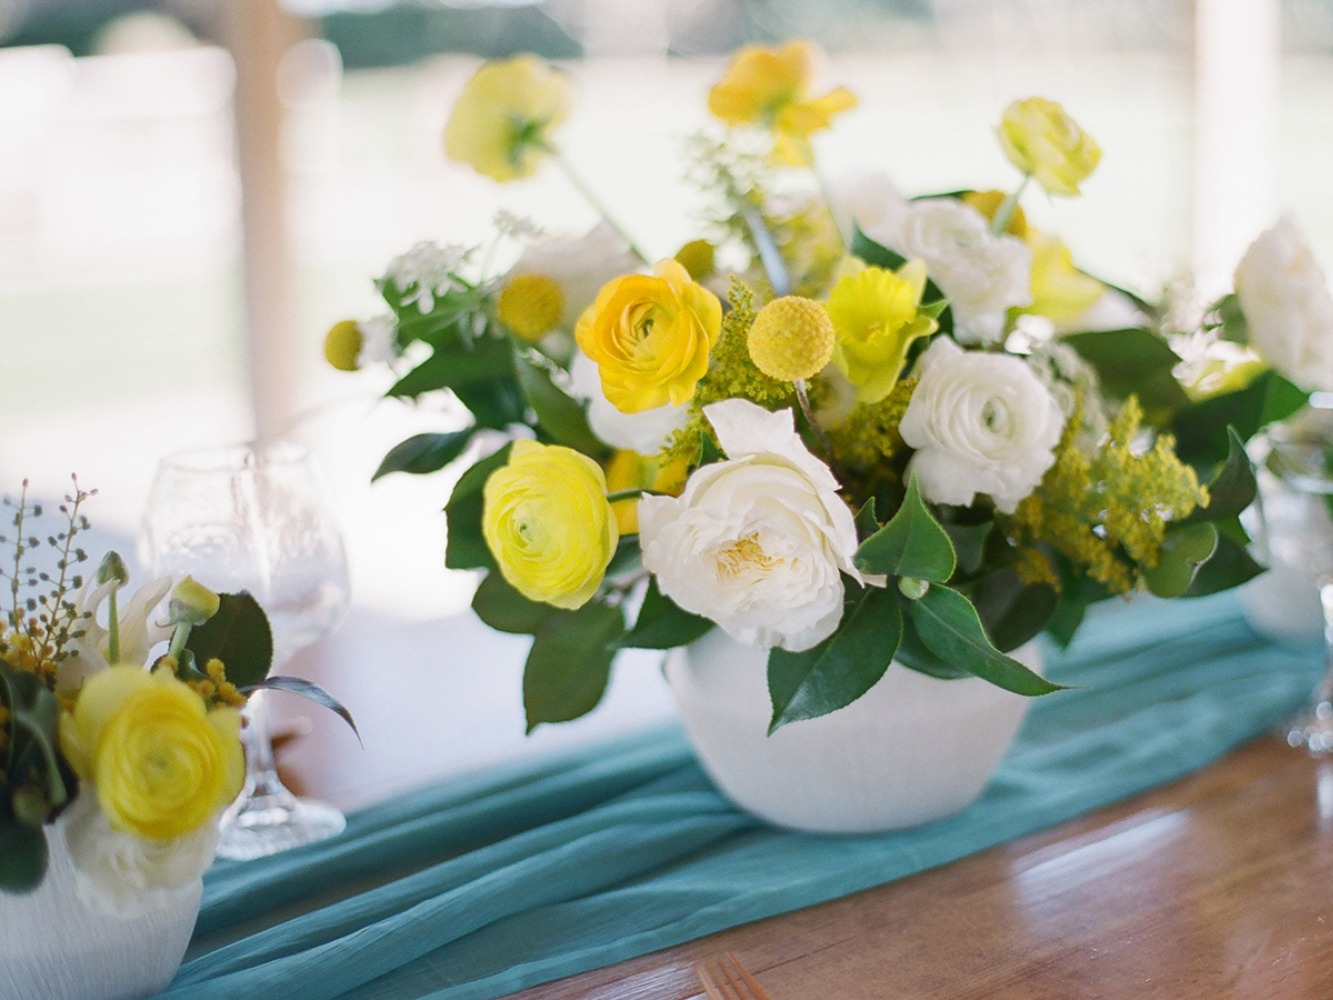 bight yellow and white wedding centerpiece